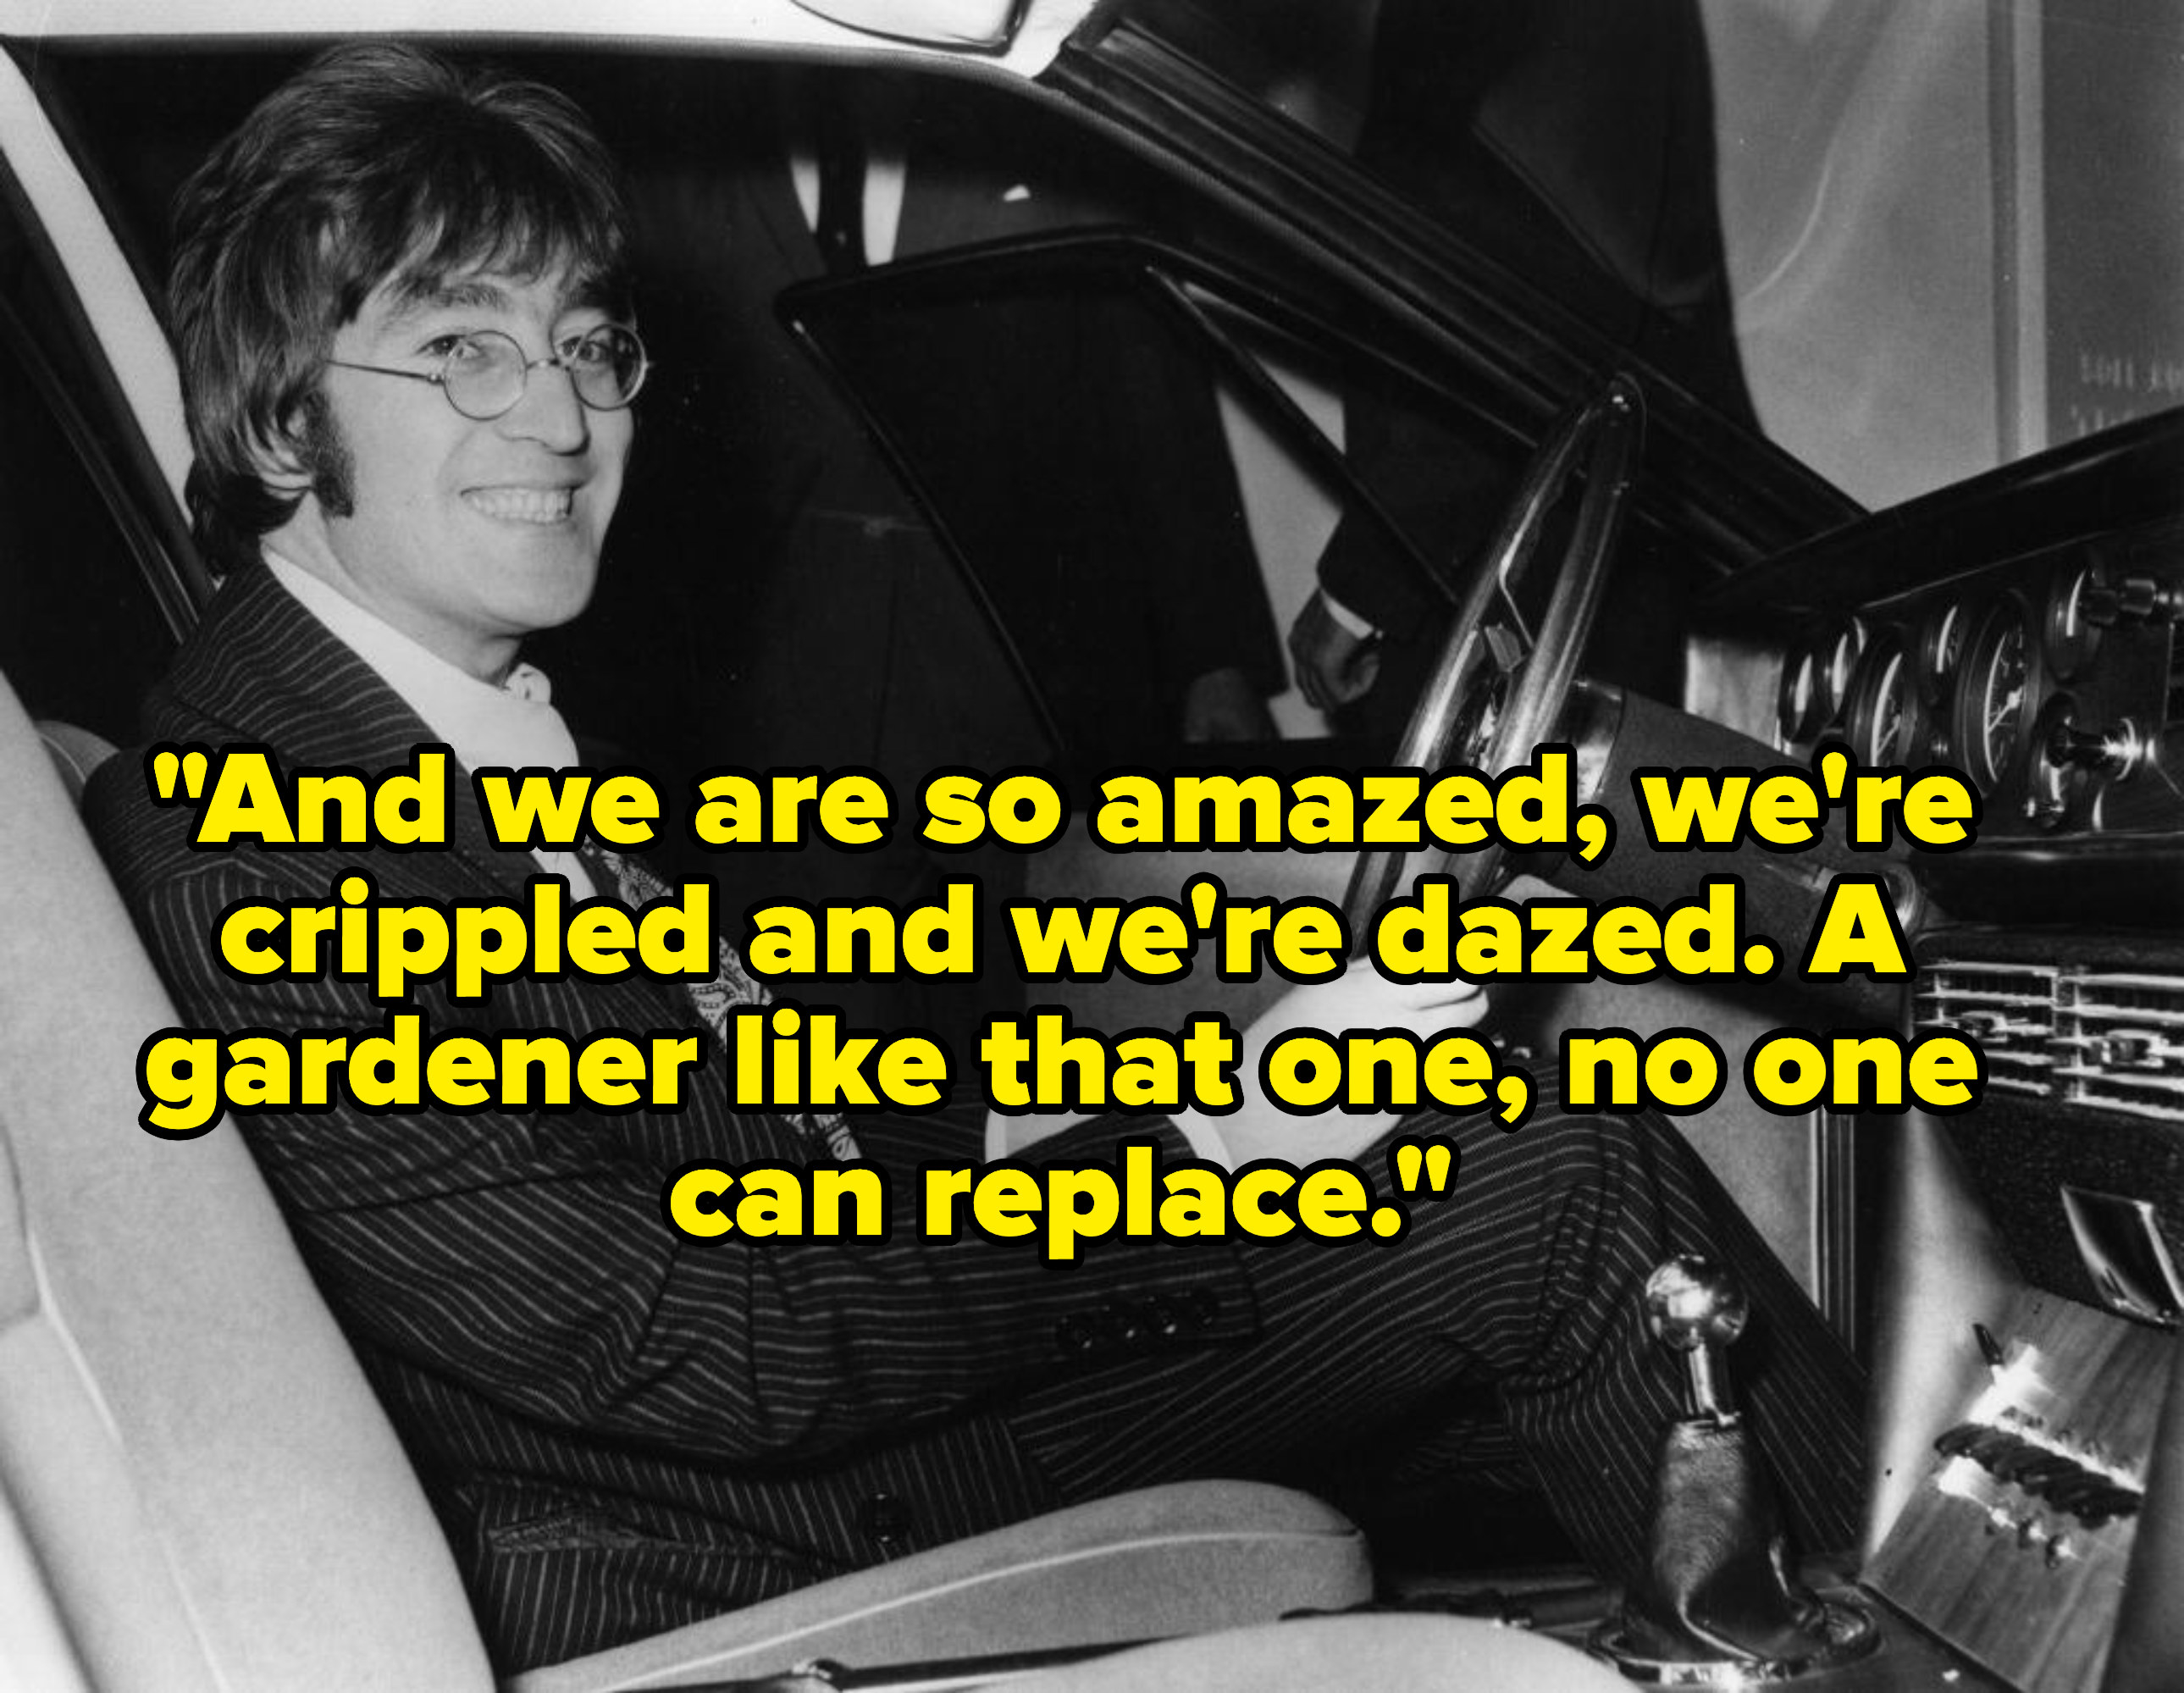 """John Lennon smiling in his car, captioned with the lyric, """"And we are so amazed, we're crippled and we're dazed. A gardener like that one, no one can replace."""""""